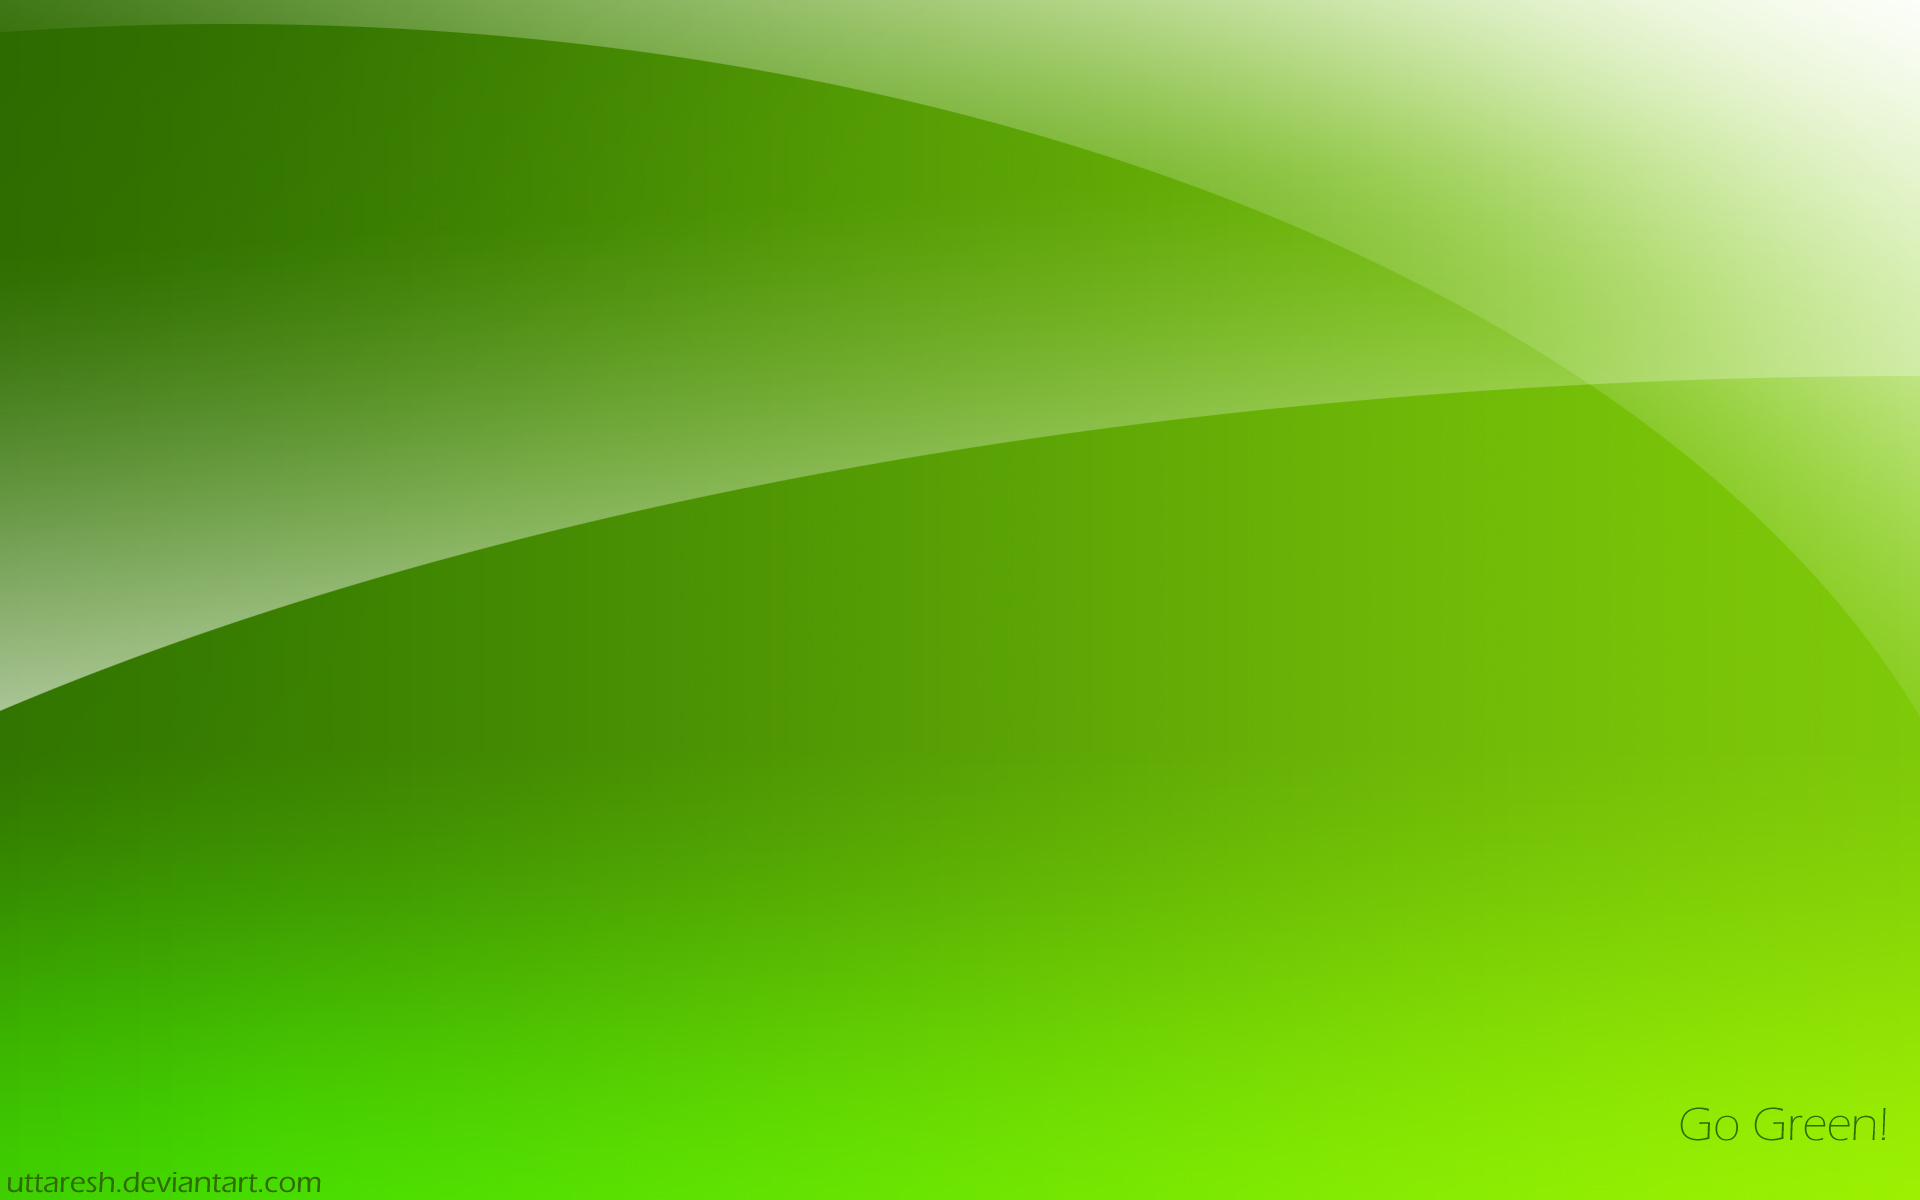 Free Download  HD Green Wallpapers for Windows and Mac Systems 1920x1200